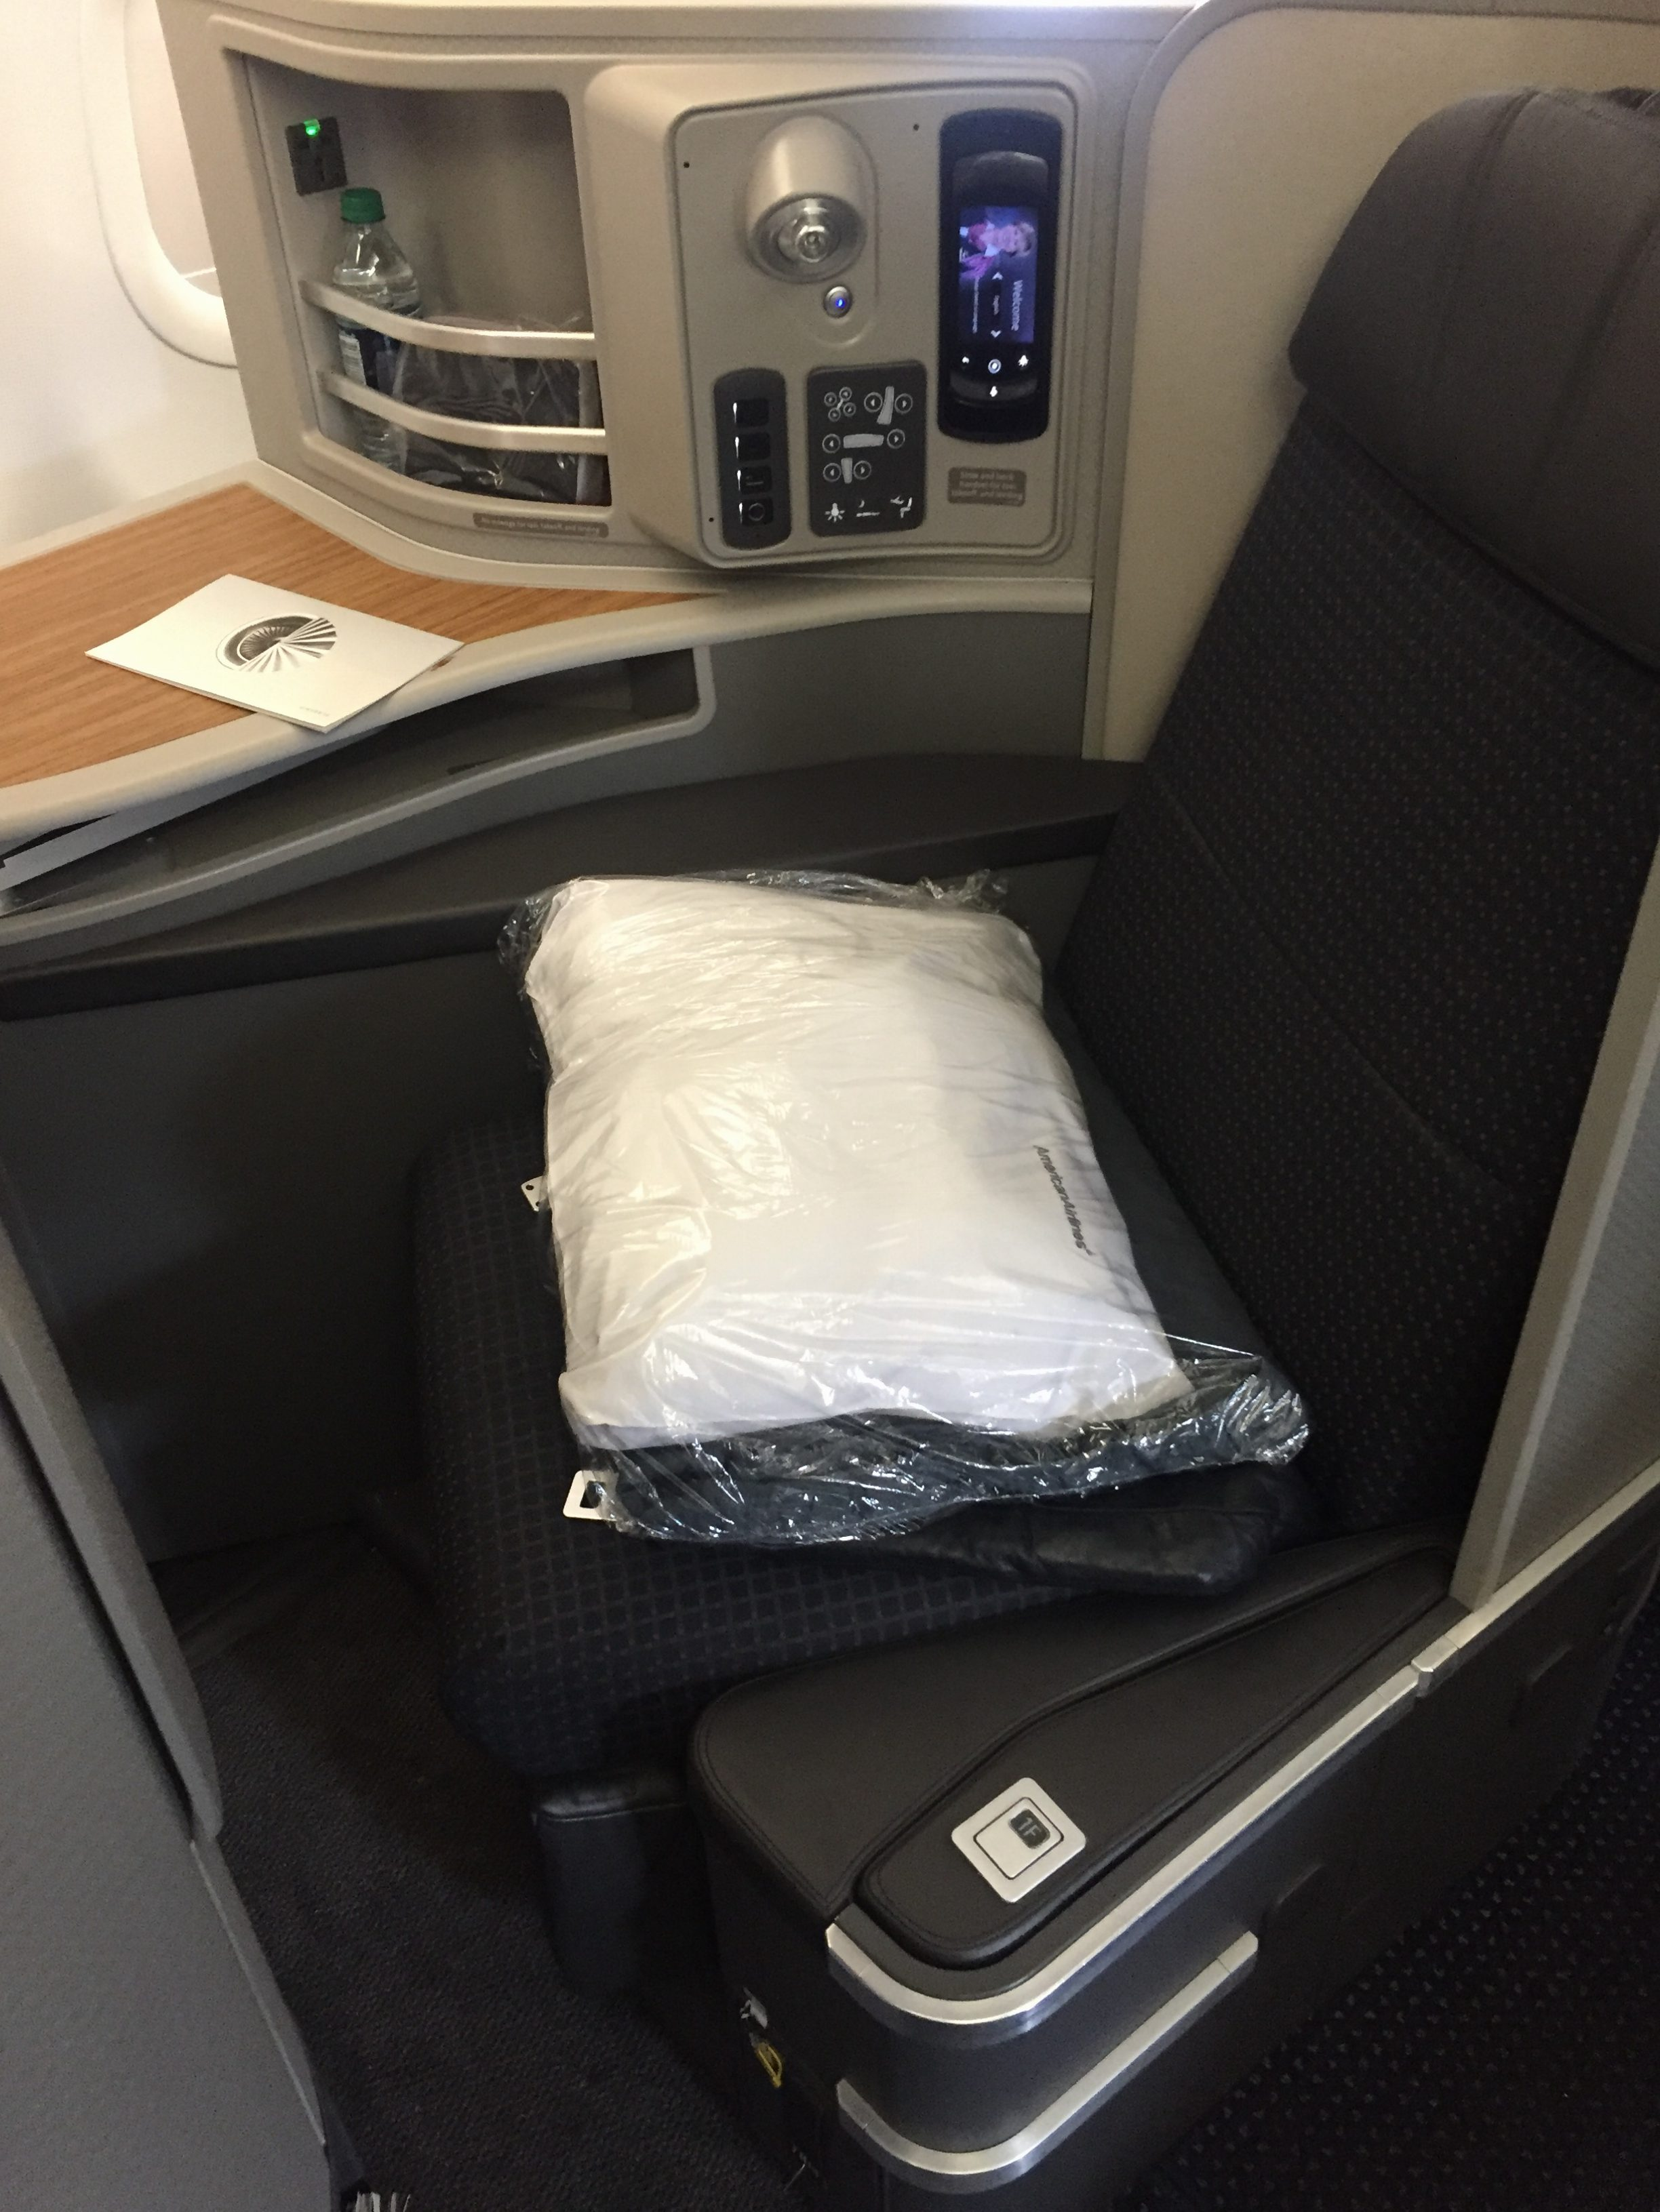 First class seat on American Airlines transcon - JFK-LAX/SFO